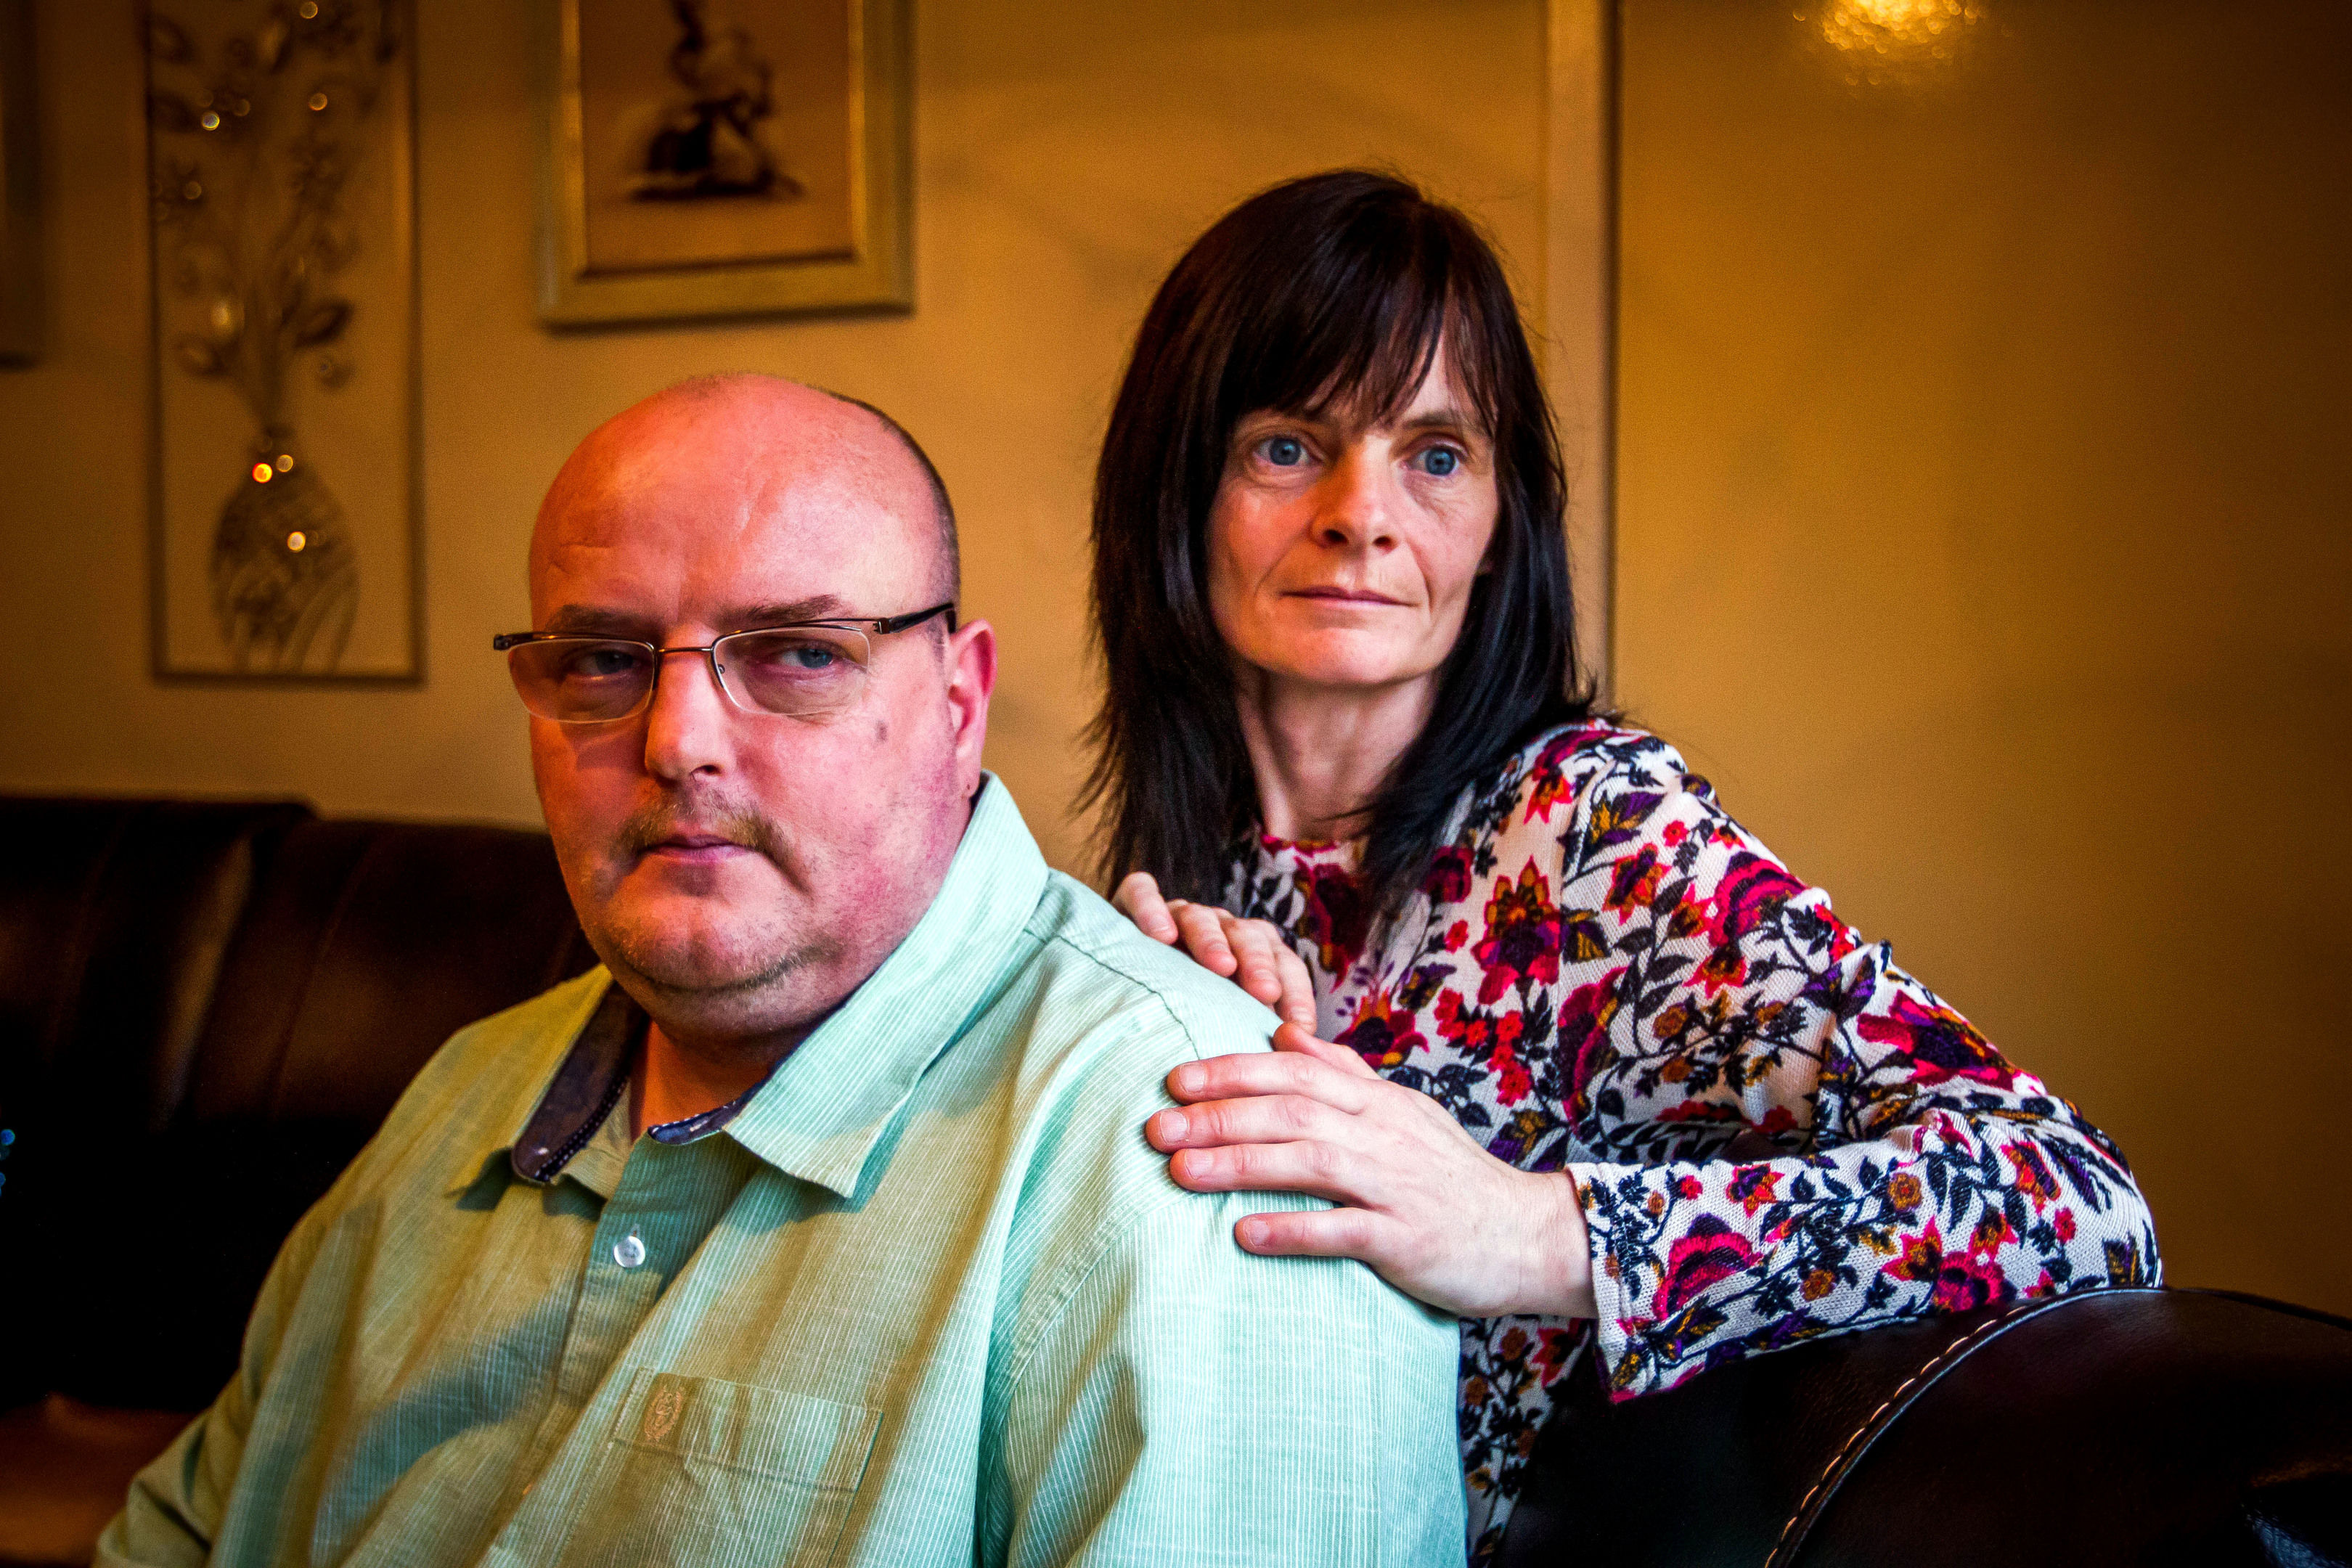 Allan Bryant's parents Allan Bryant Snr and Marie Degan have suffered pain at the hands of a serial troller